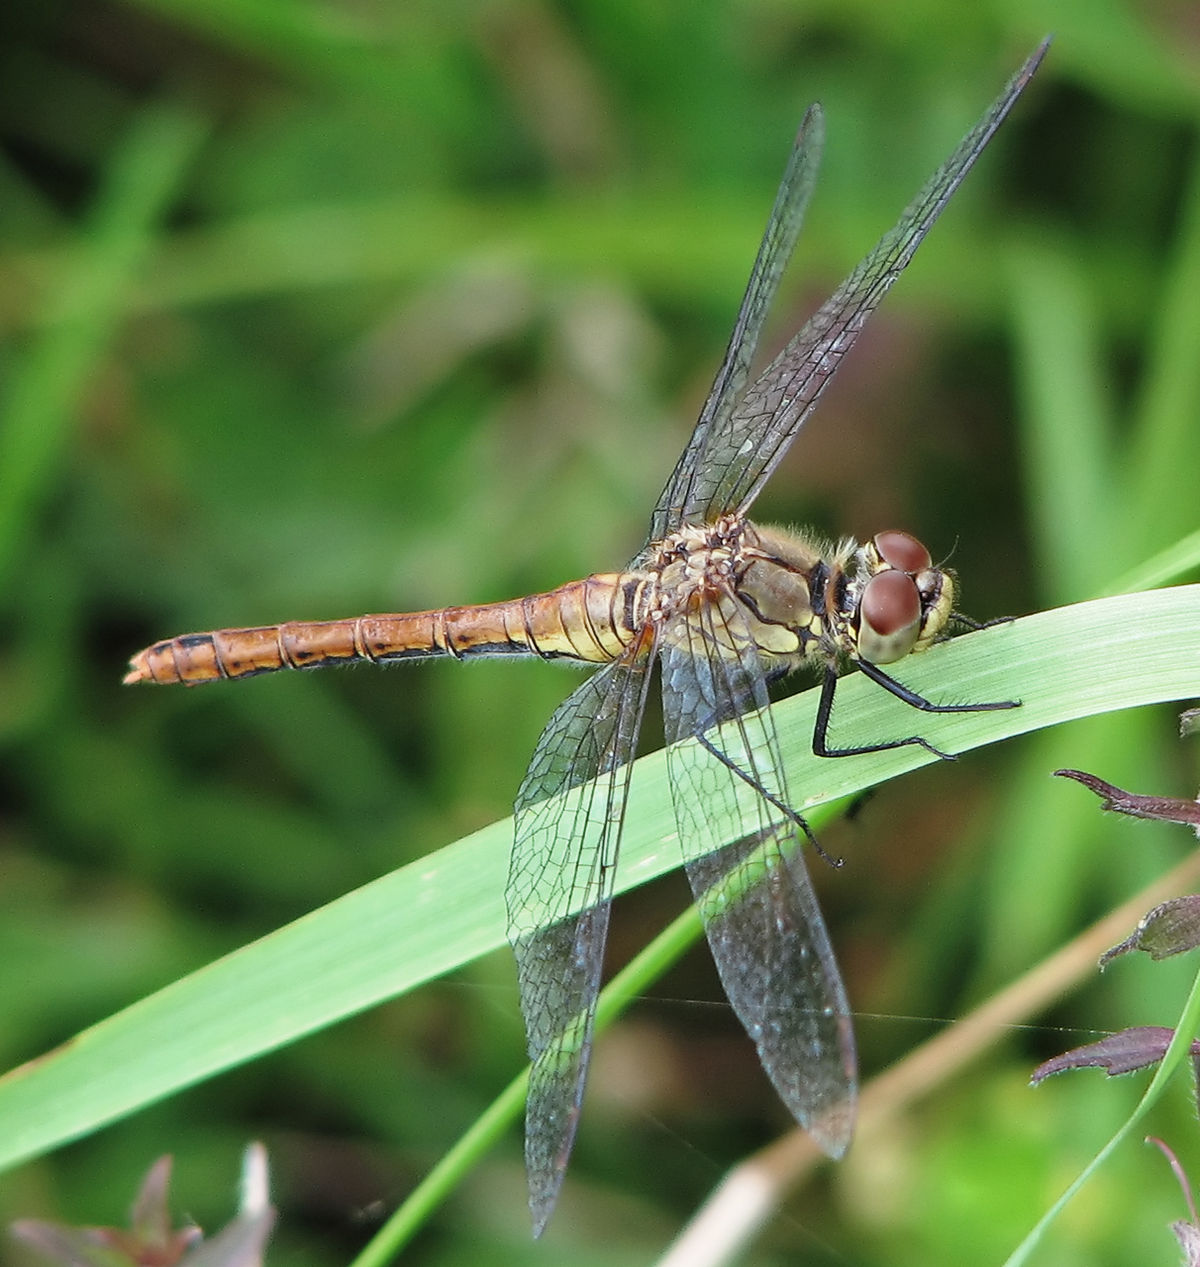 dragonfly simple english wikipedia the free encyclopedia